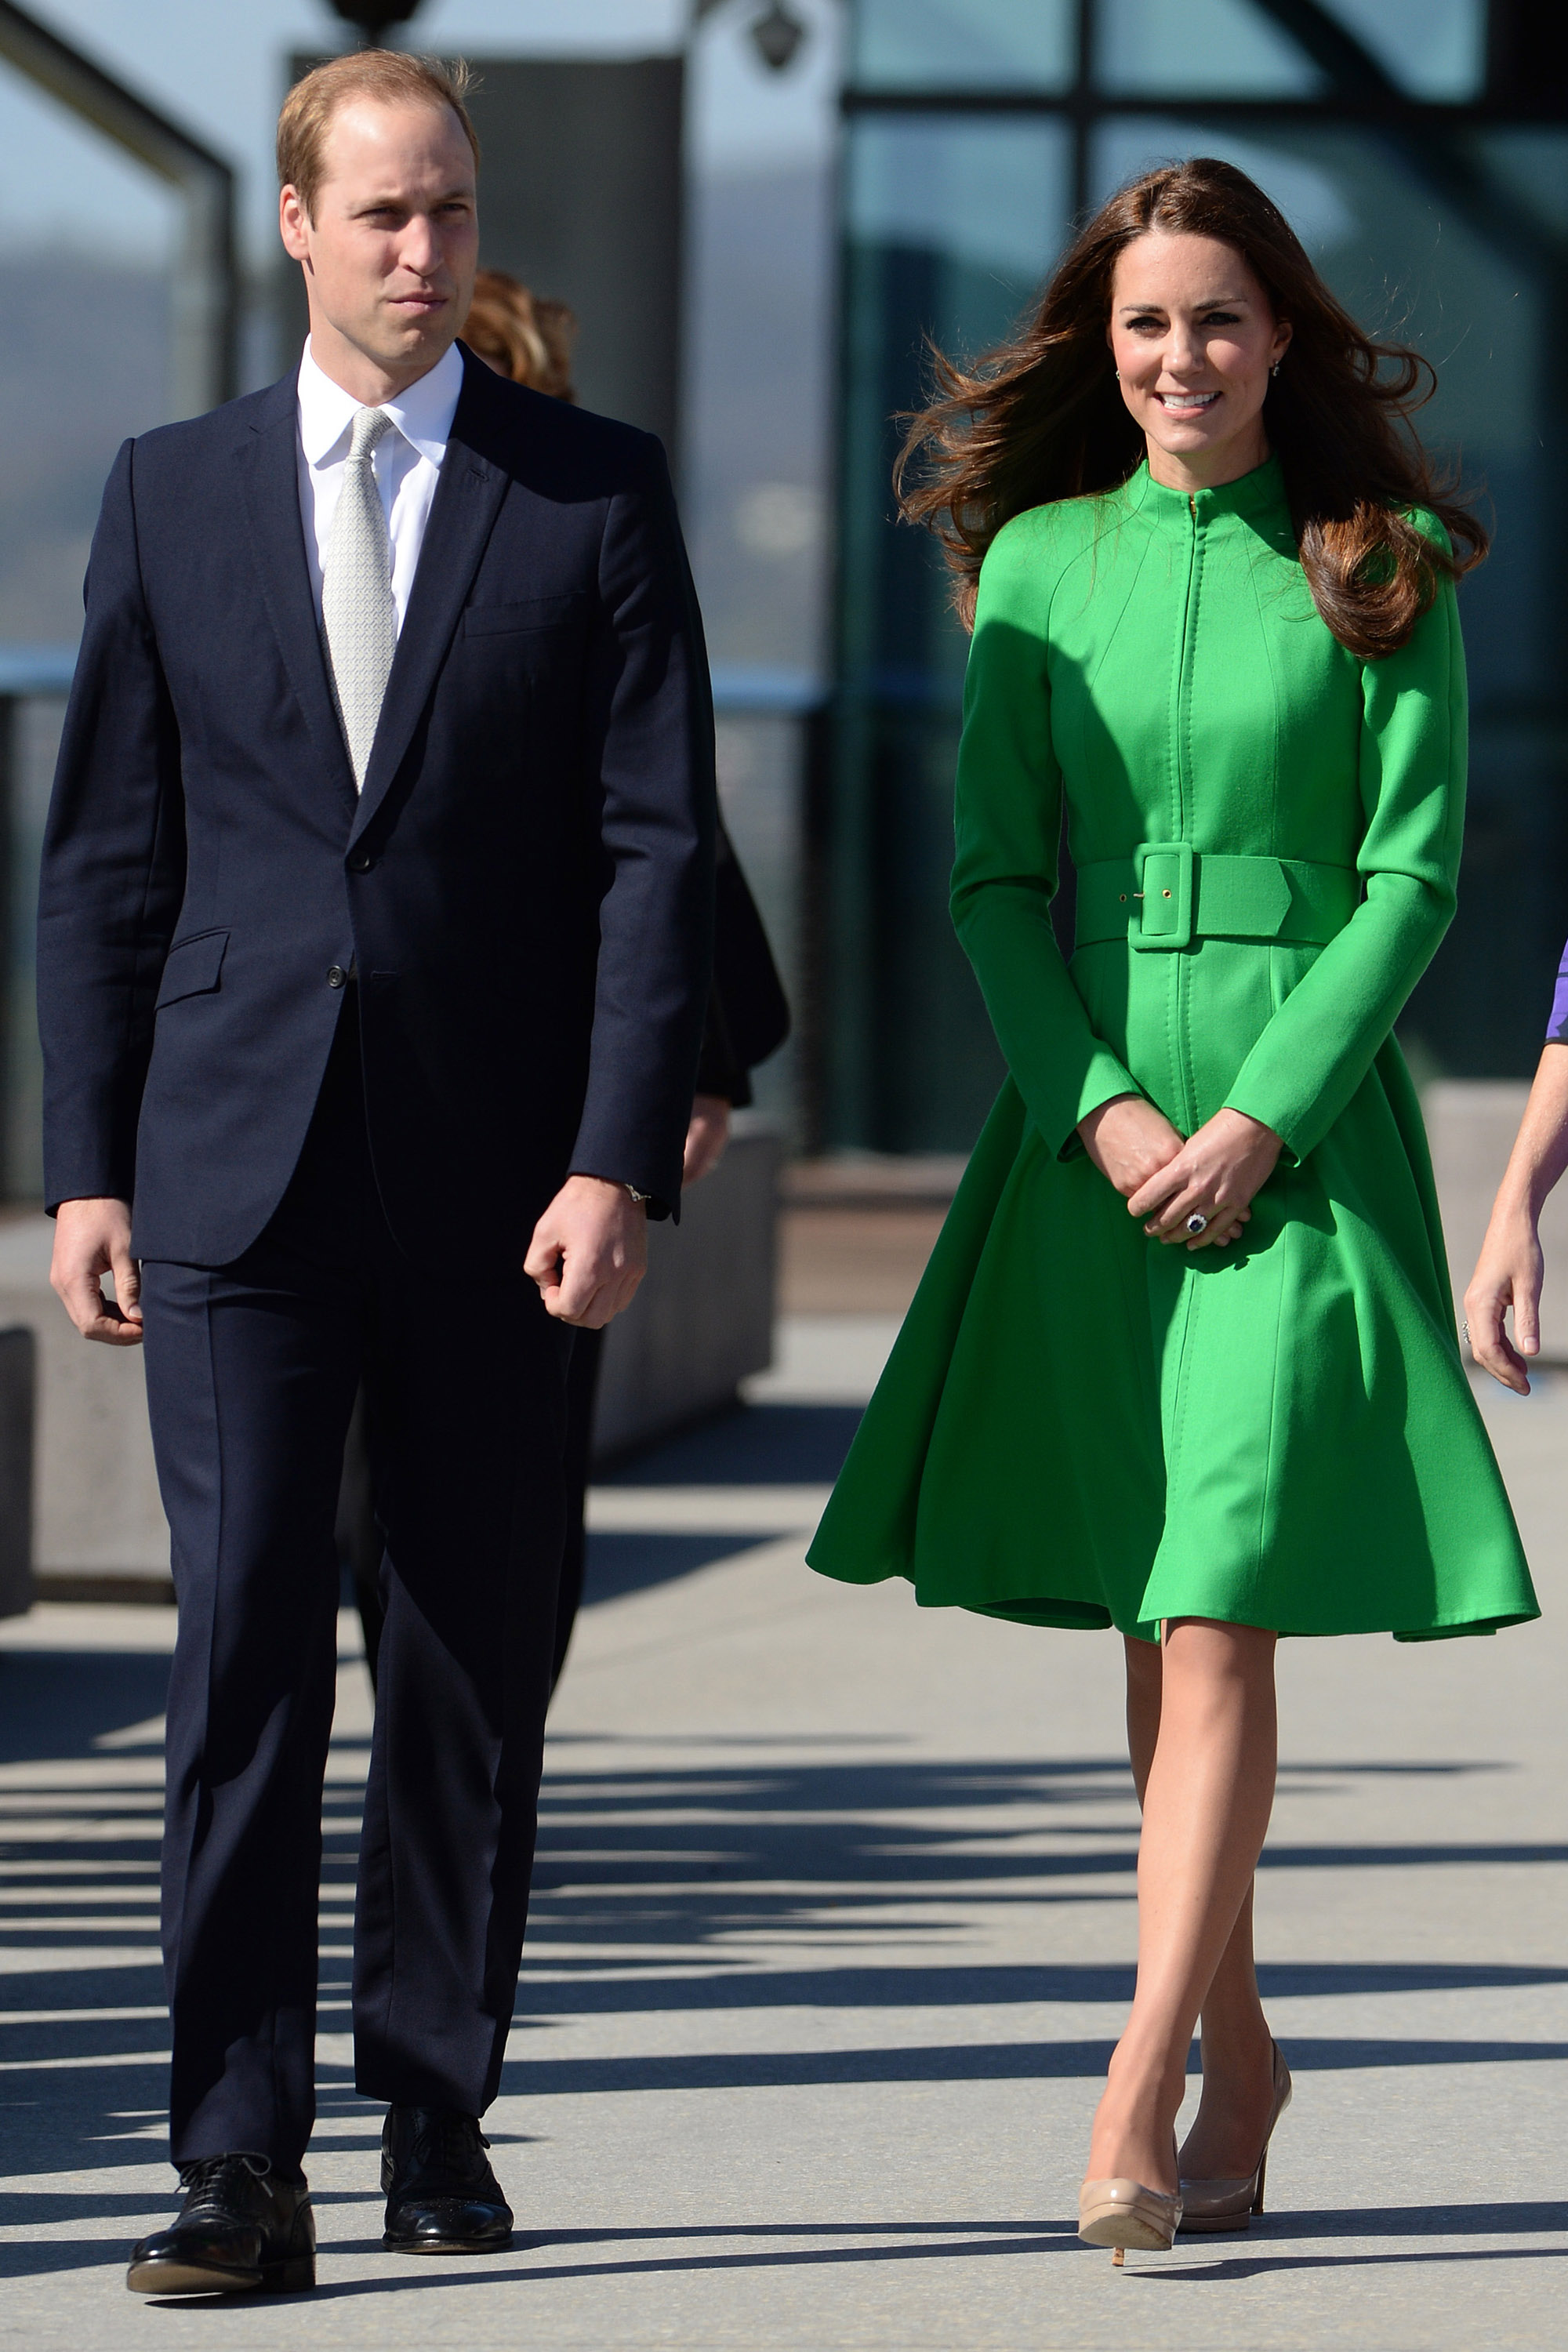 <strong>Seeing Green</strong>                                   From left: The Duke and Duchess visit the National Portrait Gallery in Canberra April 24, 2014.